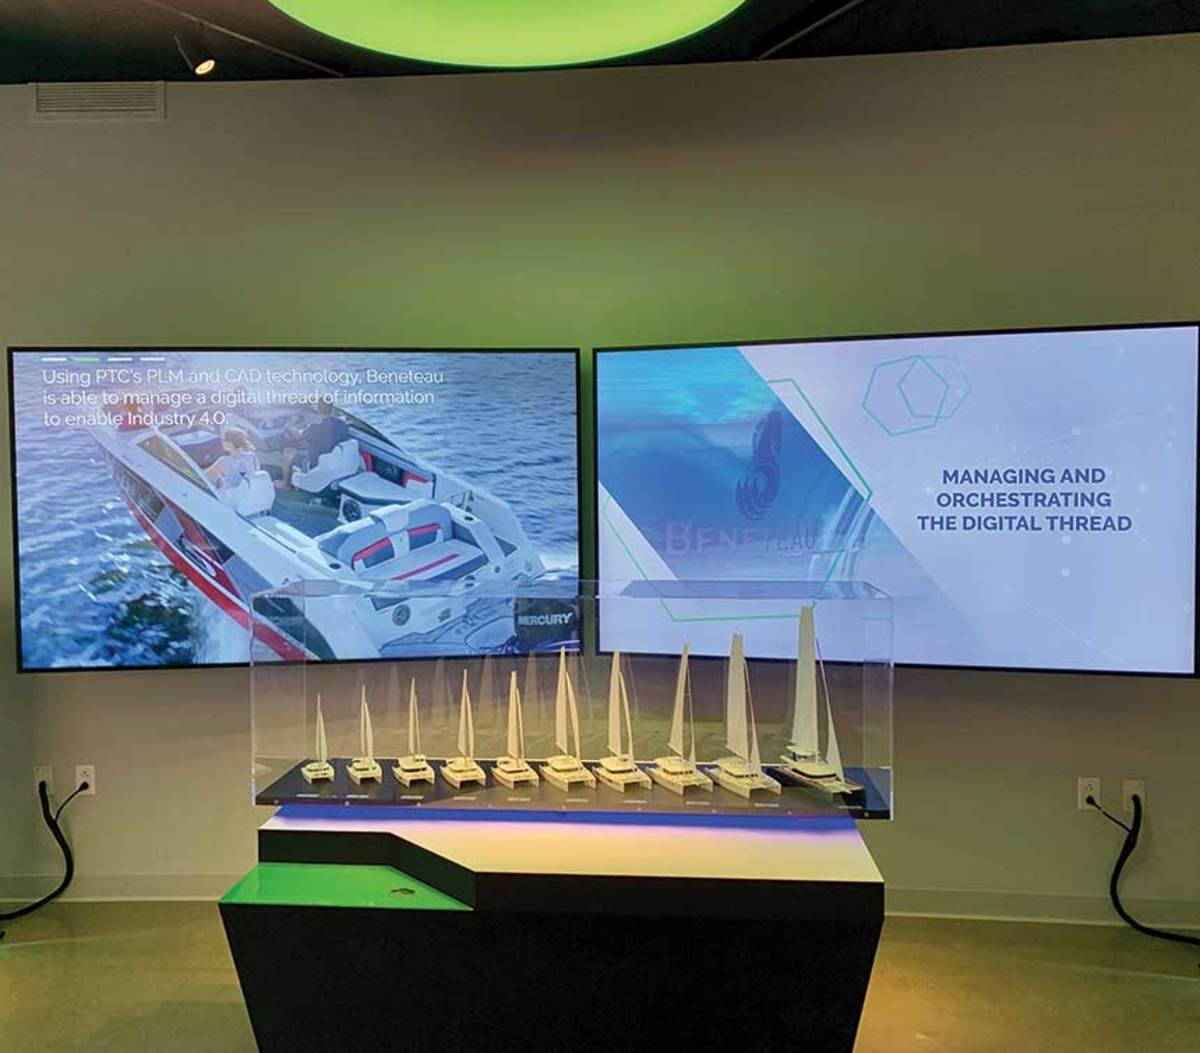 PTC says real-time information via digital threads lets boatbuilders make quick changes to boats and parts during manufacturing.